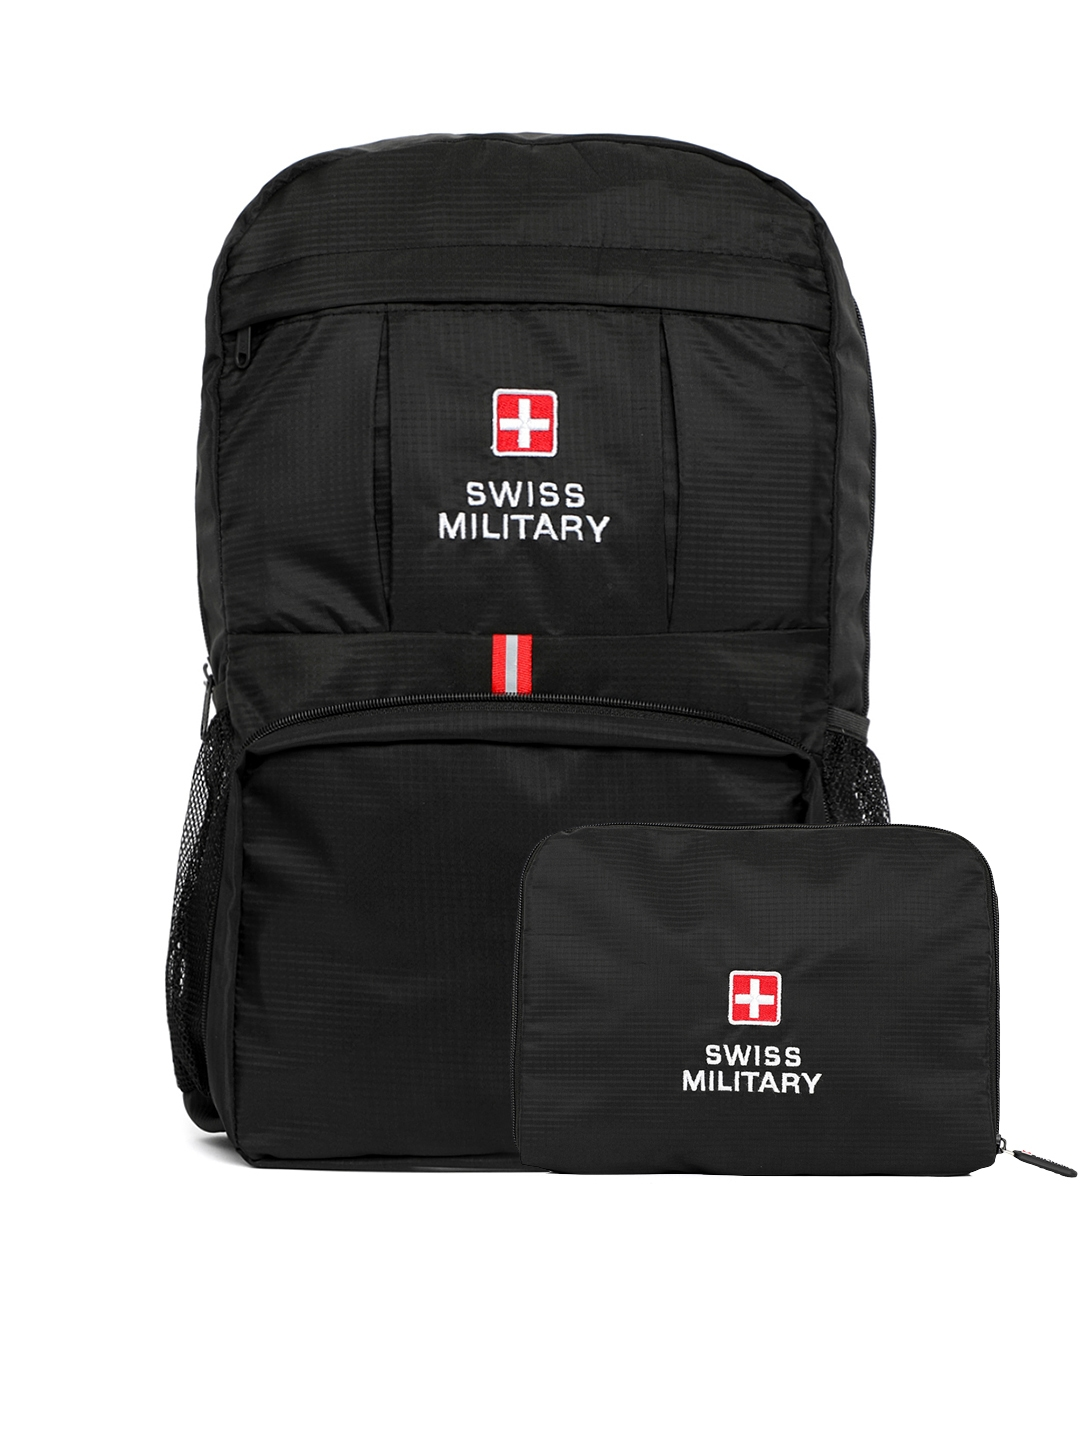 SWISS MILITARY Unisex Black Solid Backpack